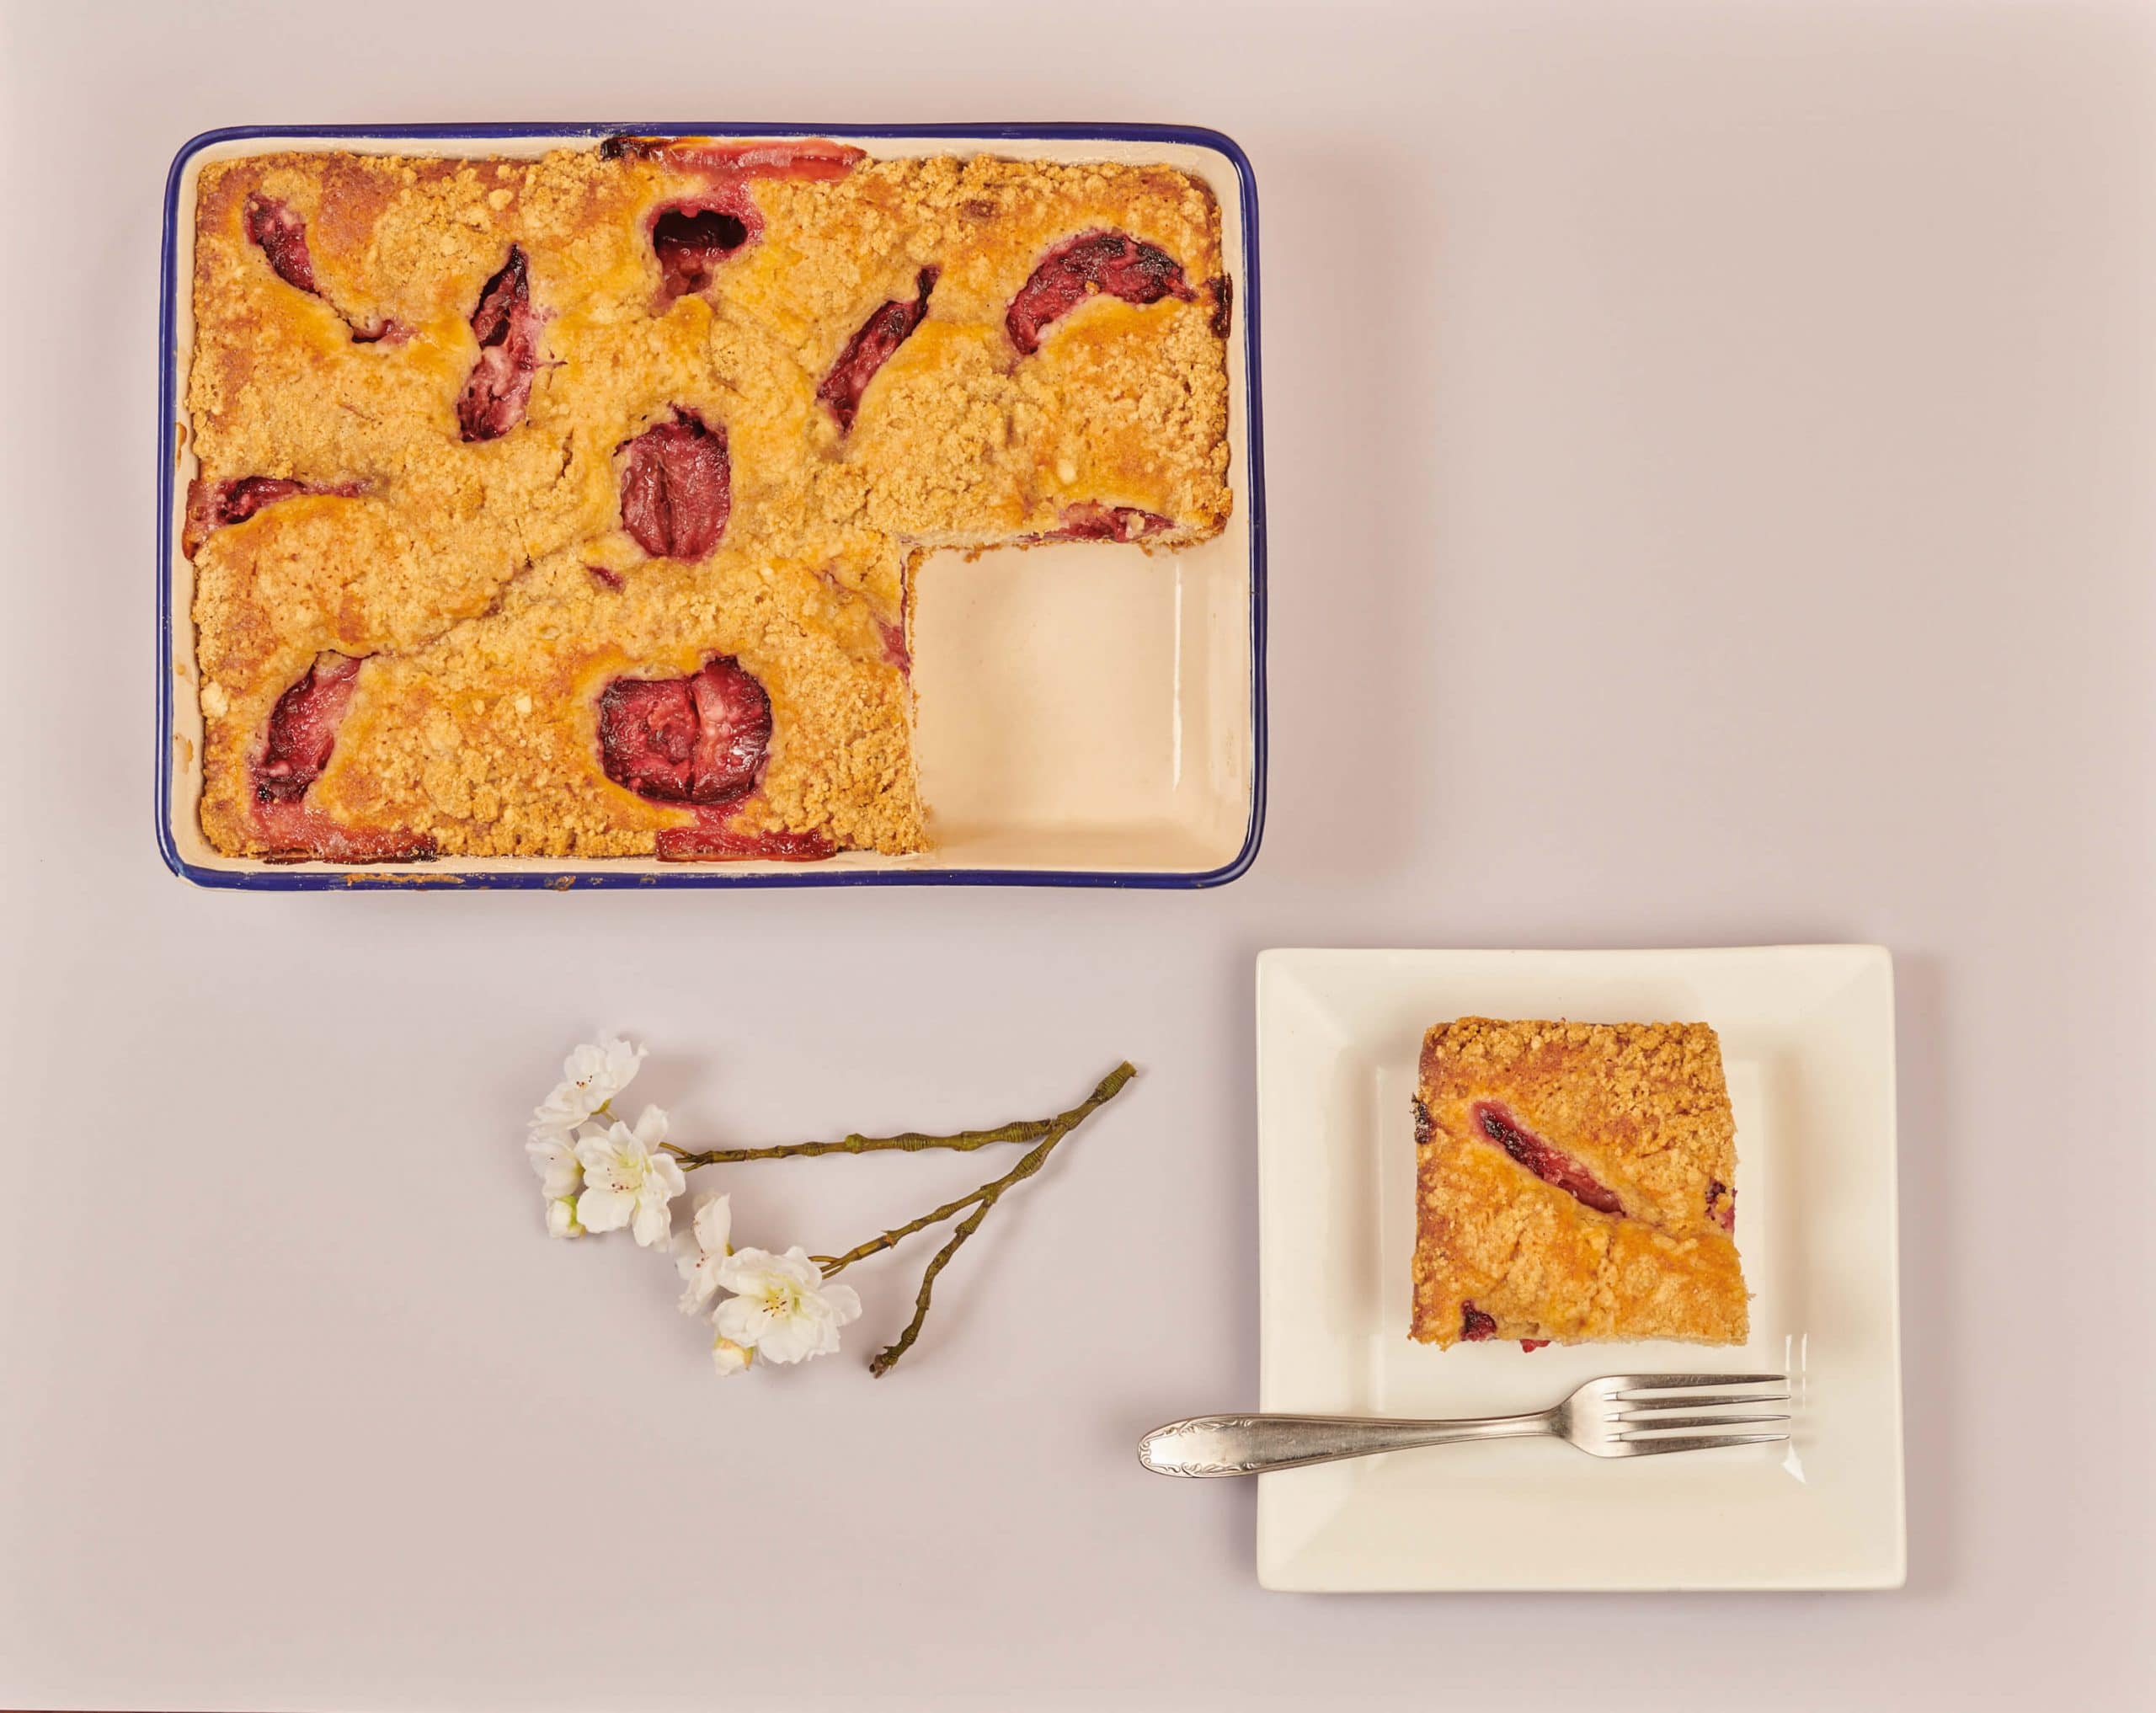 Lemon and Plum Crater Cake